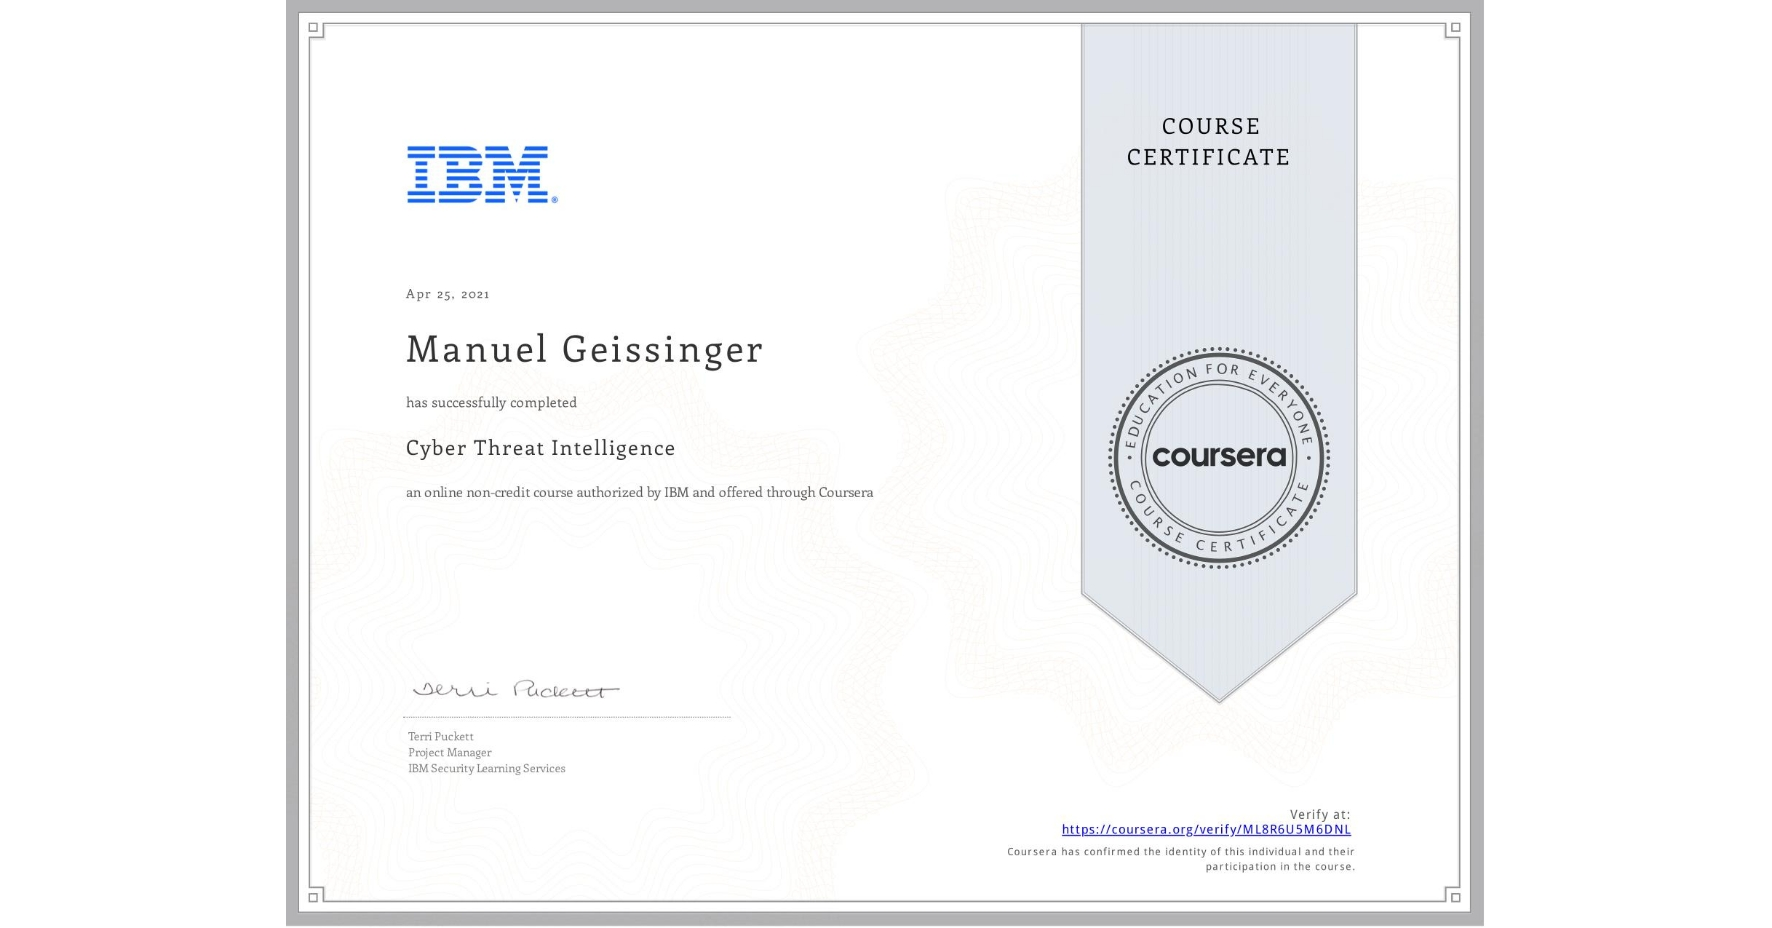 View certificate for Manuel Geissinger, Cyber Threat Intelligence, an online non-credit course authorized by IBM and offered through Coursera